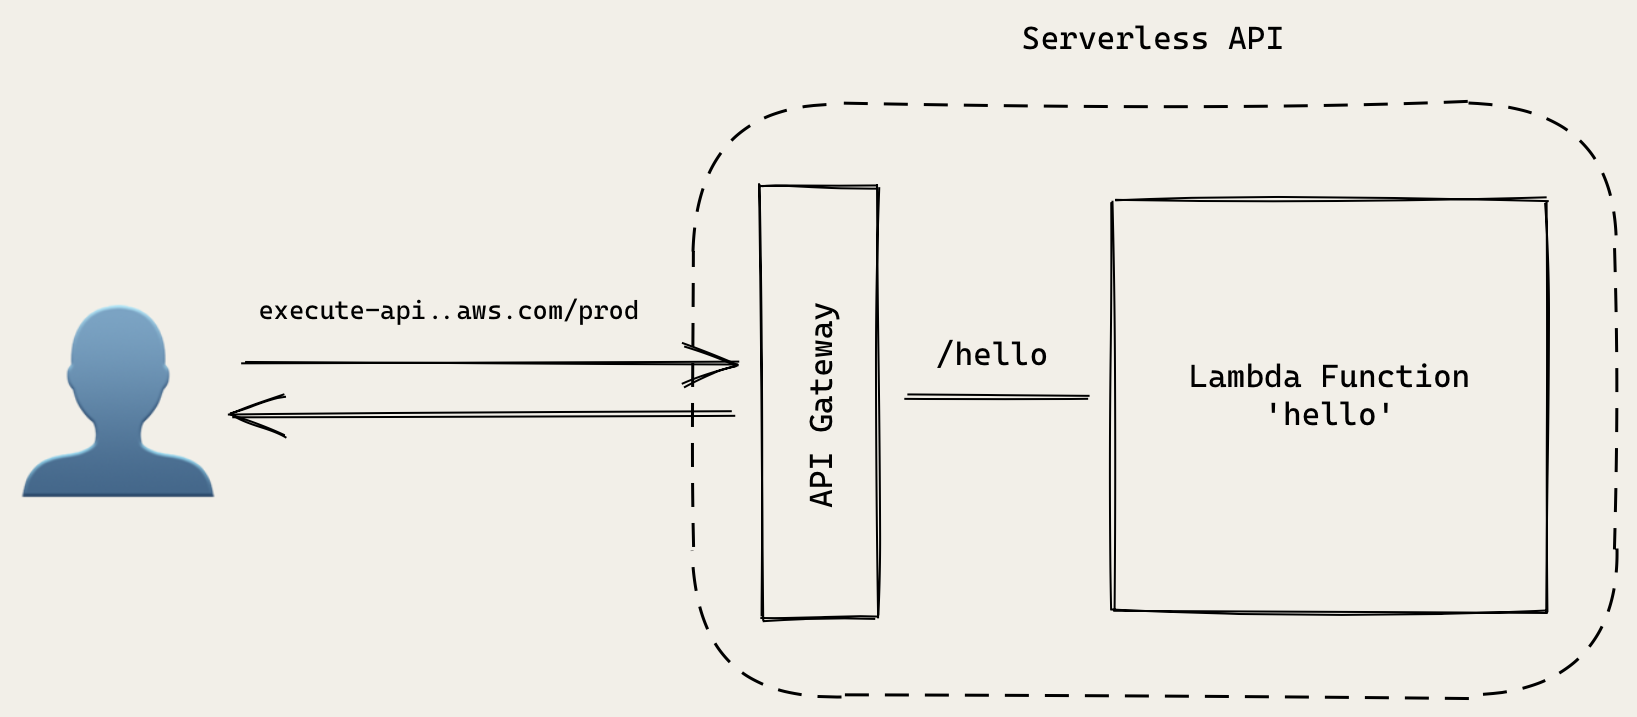 Serverless Hello World API architecture